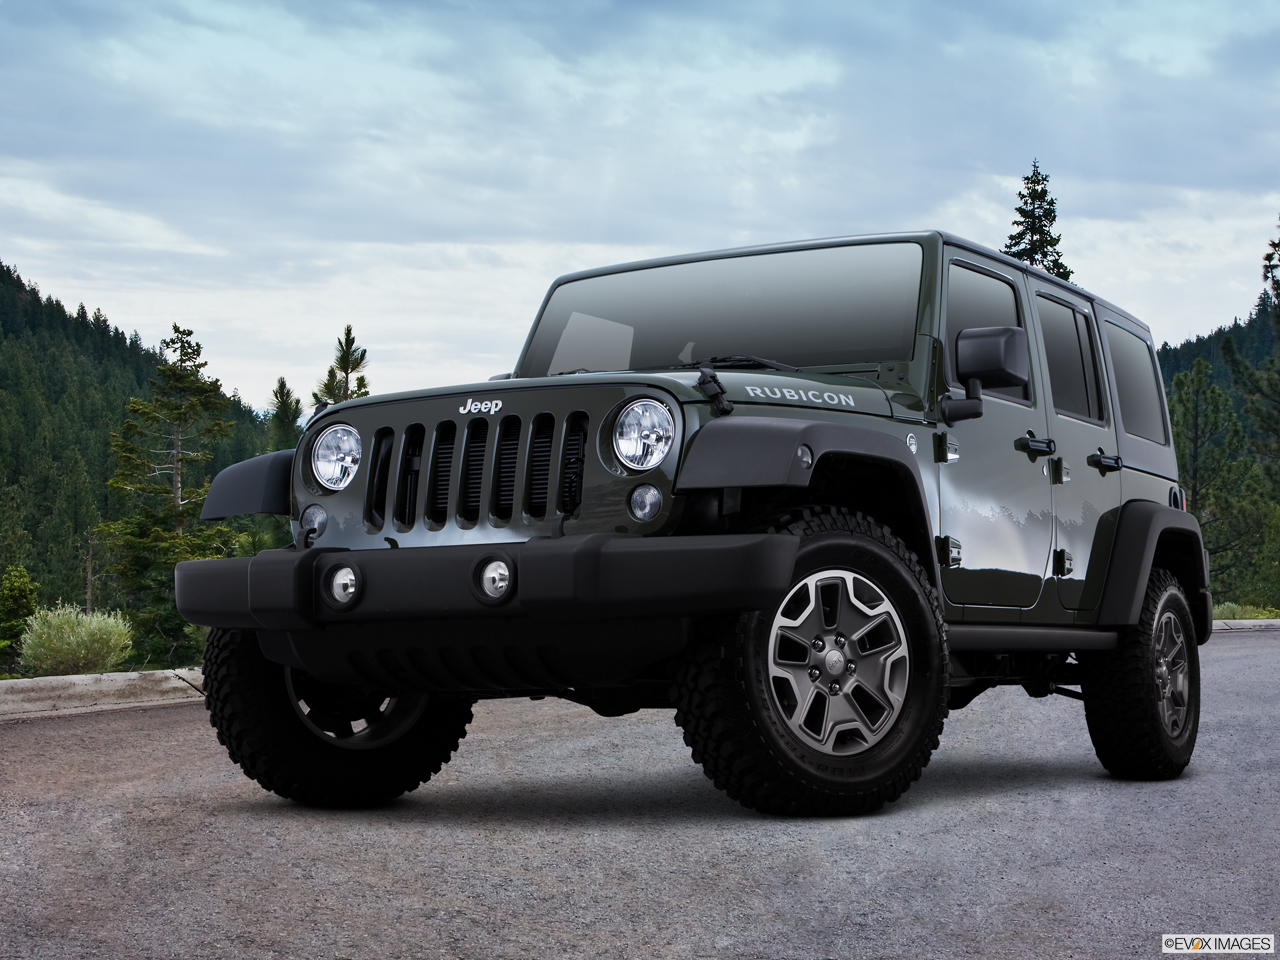 Exterior View Of 2016 Jeep Wrangler Unlimited in Tracy